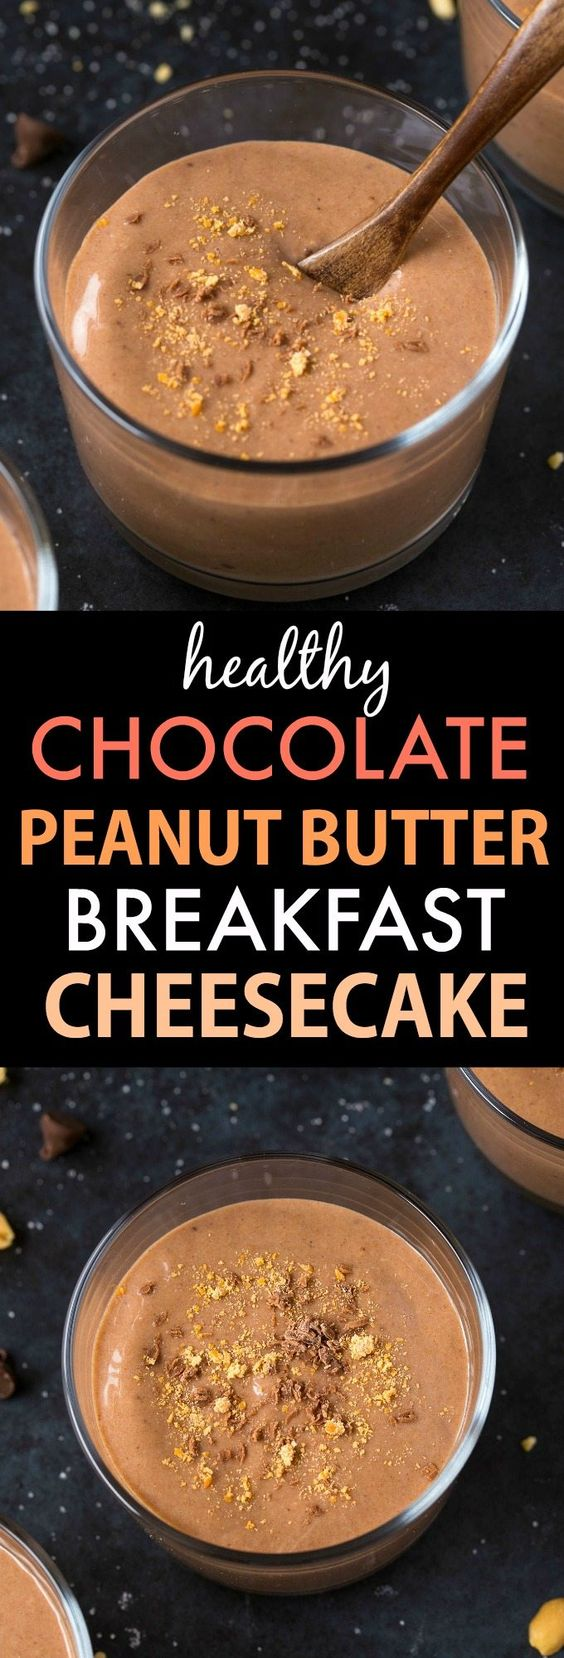 Healthy Chocolate Peanut Butter Breakfast Cheesecake